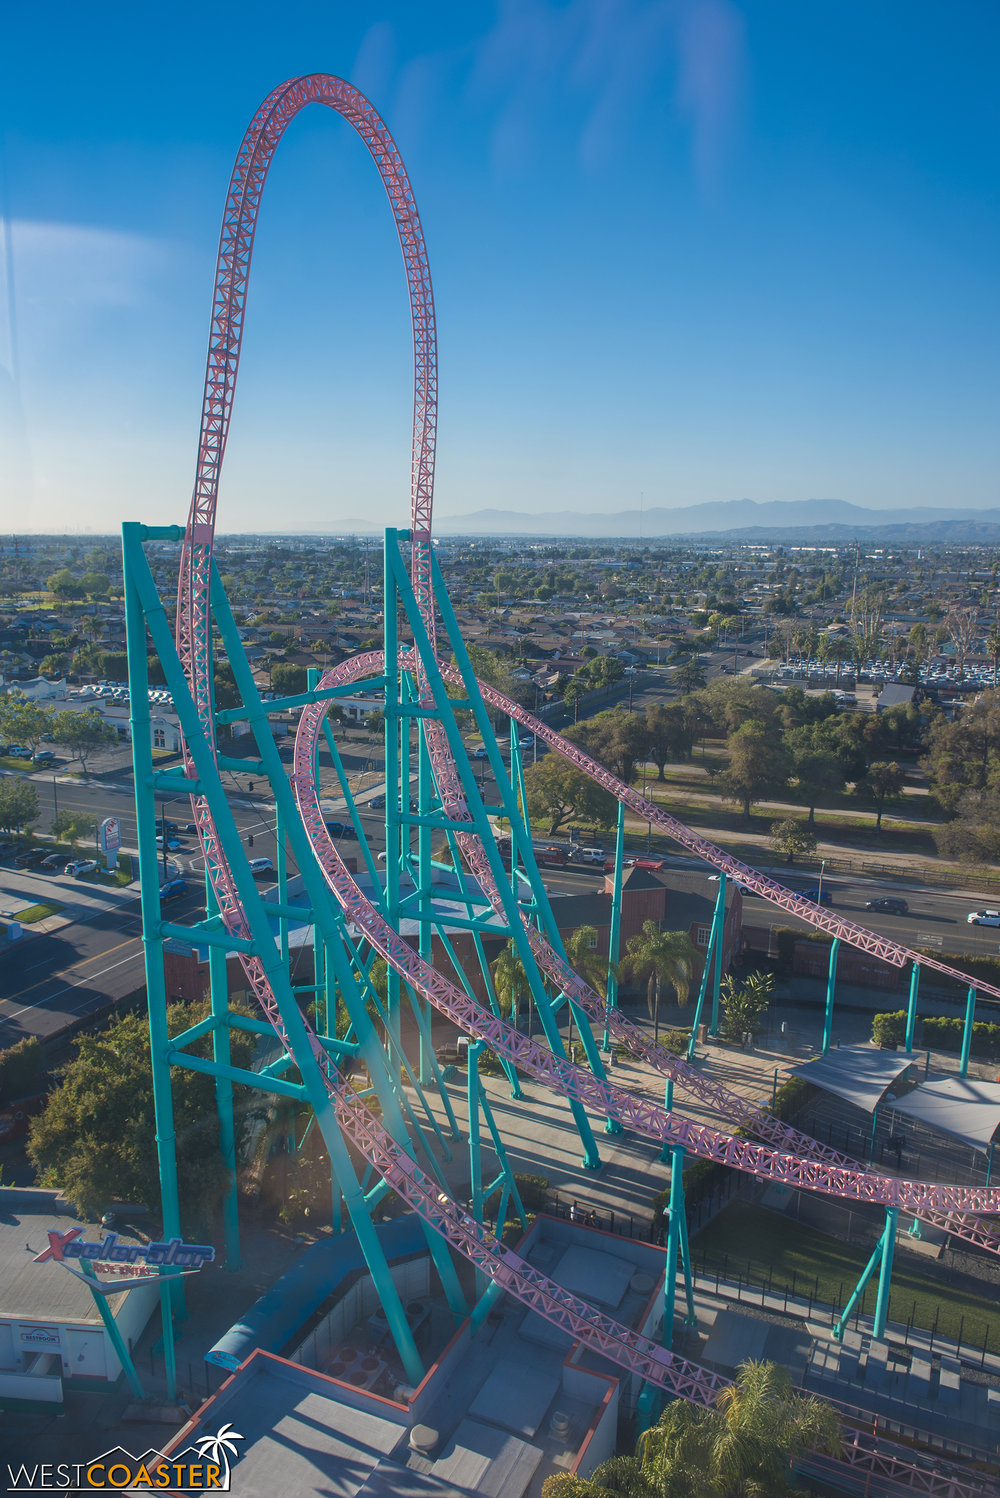 Check out the coaster from high above the park!